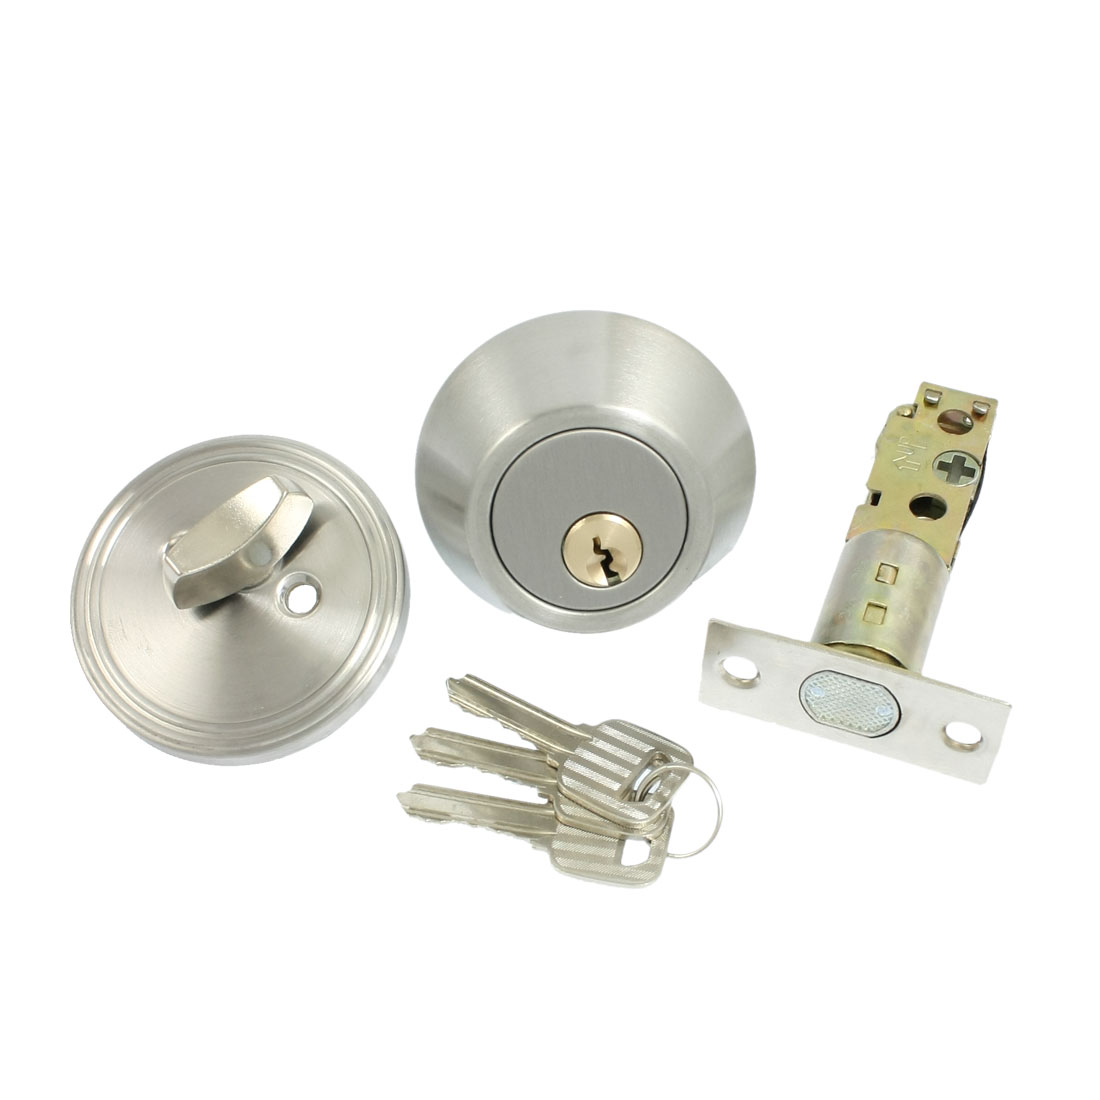 Home Door Locking Security Single Cylinder Deadbolt Lock Silver Tone